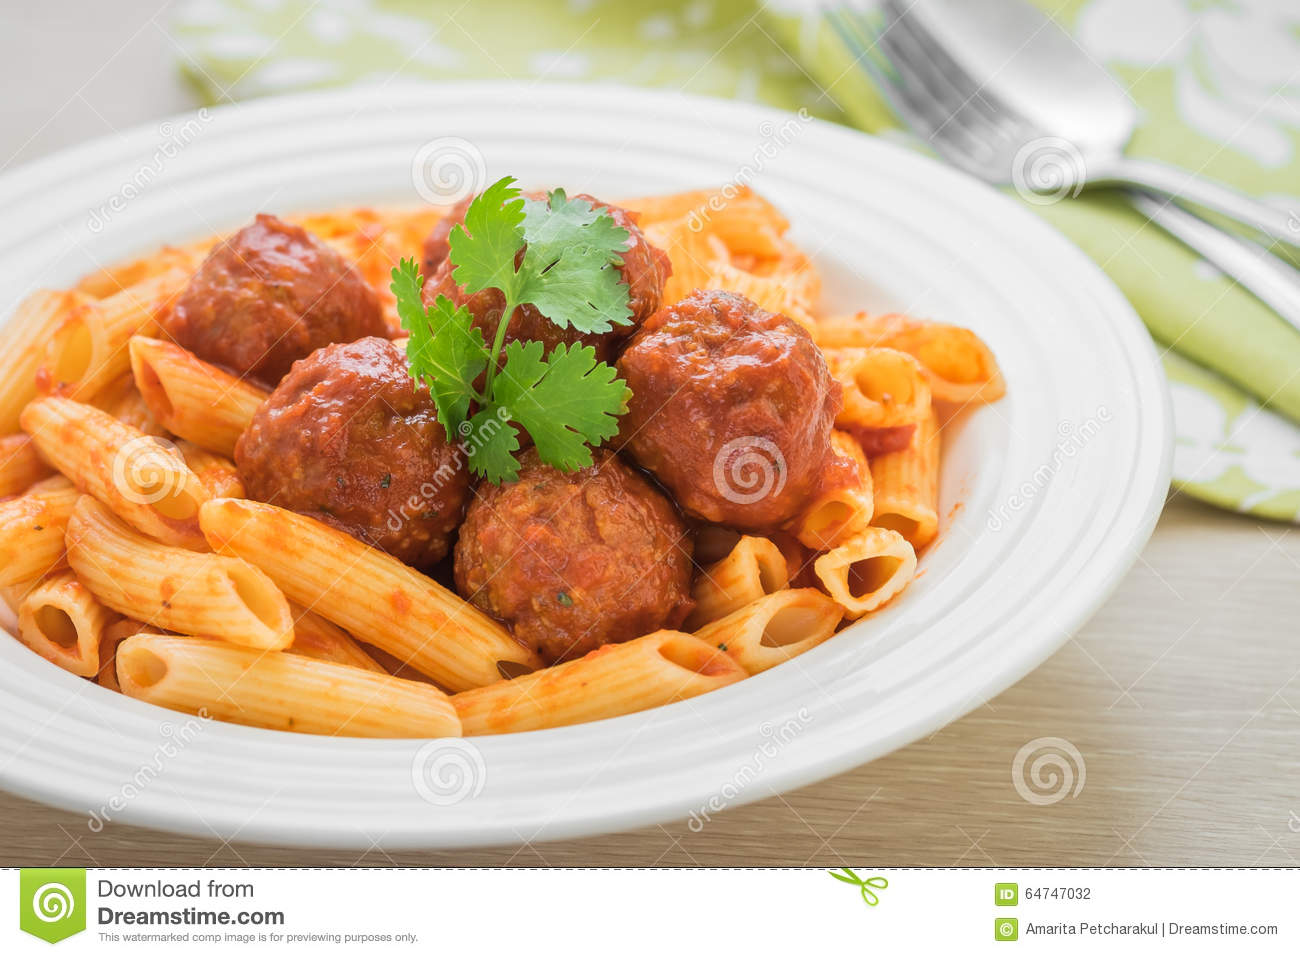 how to make penne pasta with spaghetti sauce